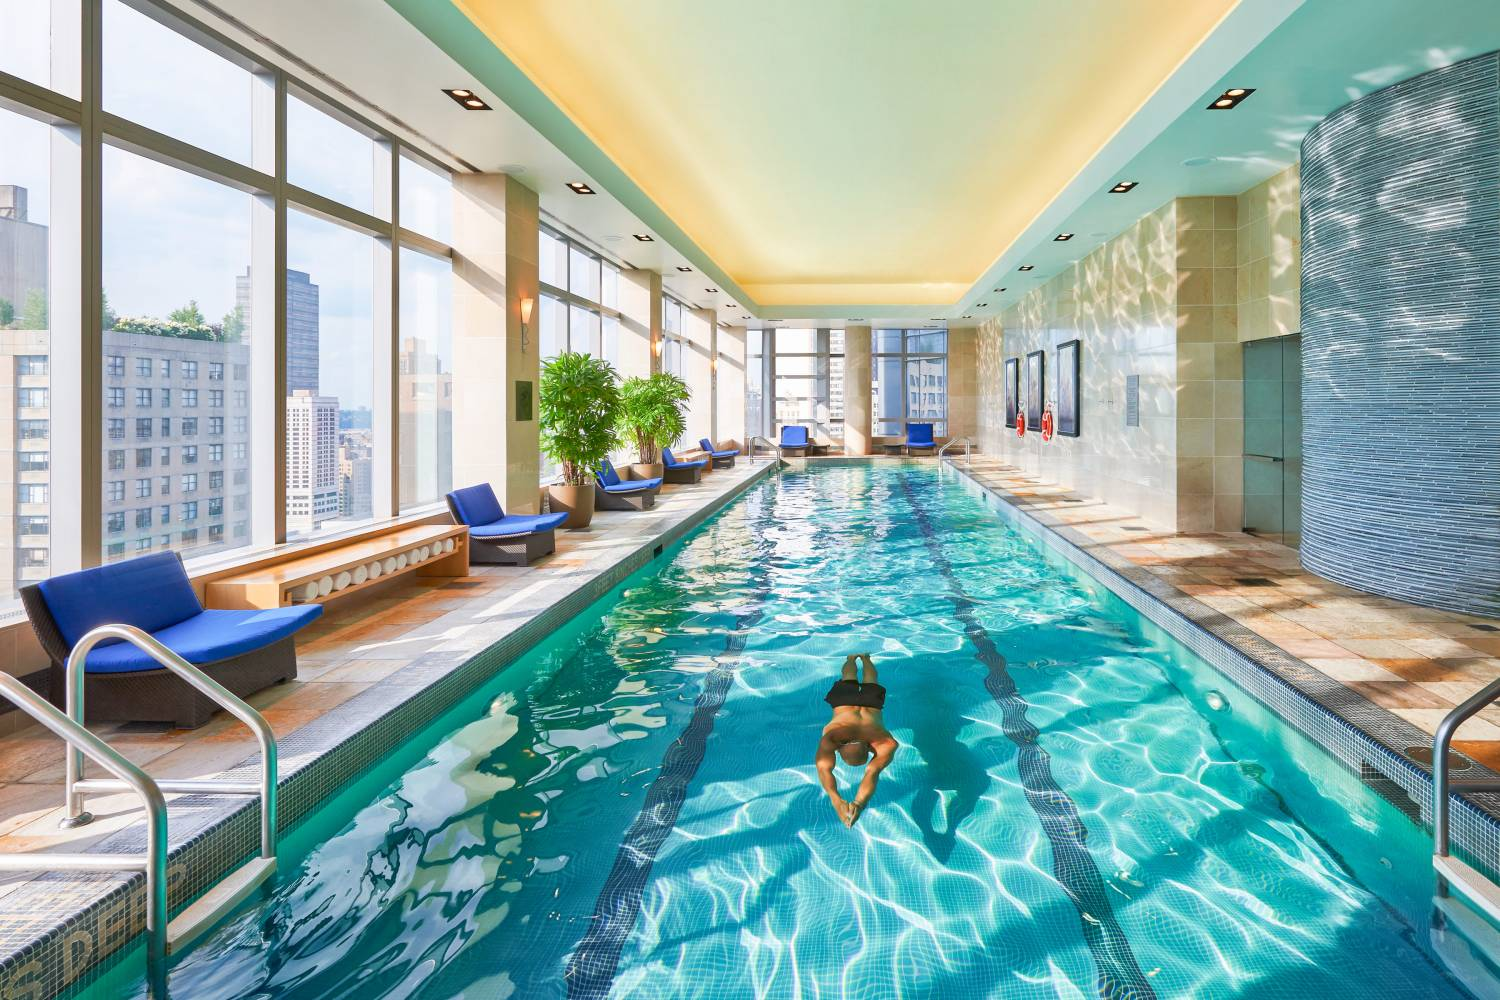 Nyc hotels with swimming pools for New swimming pool